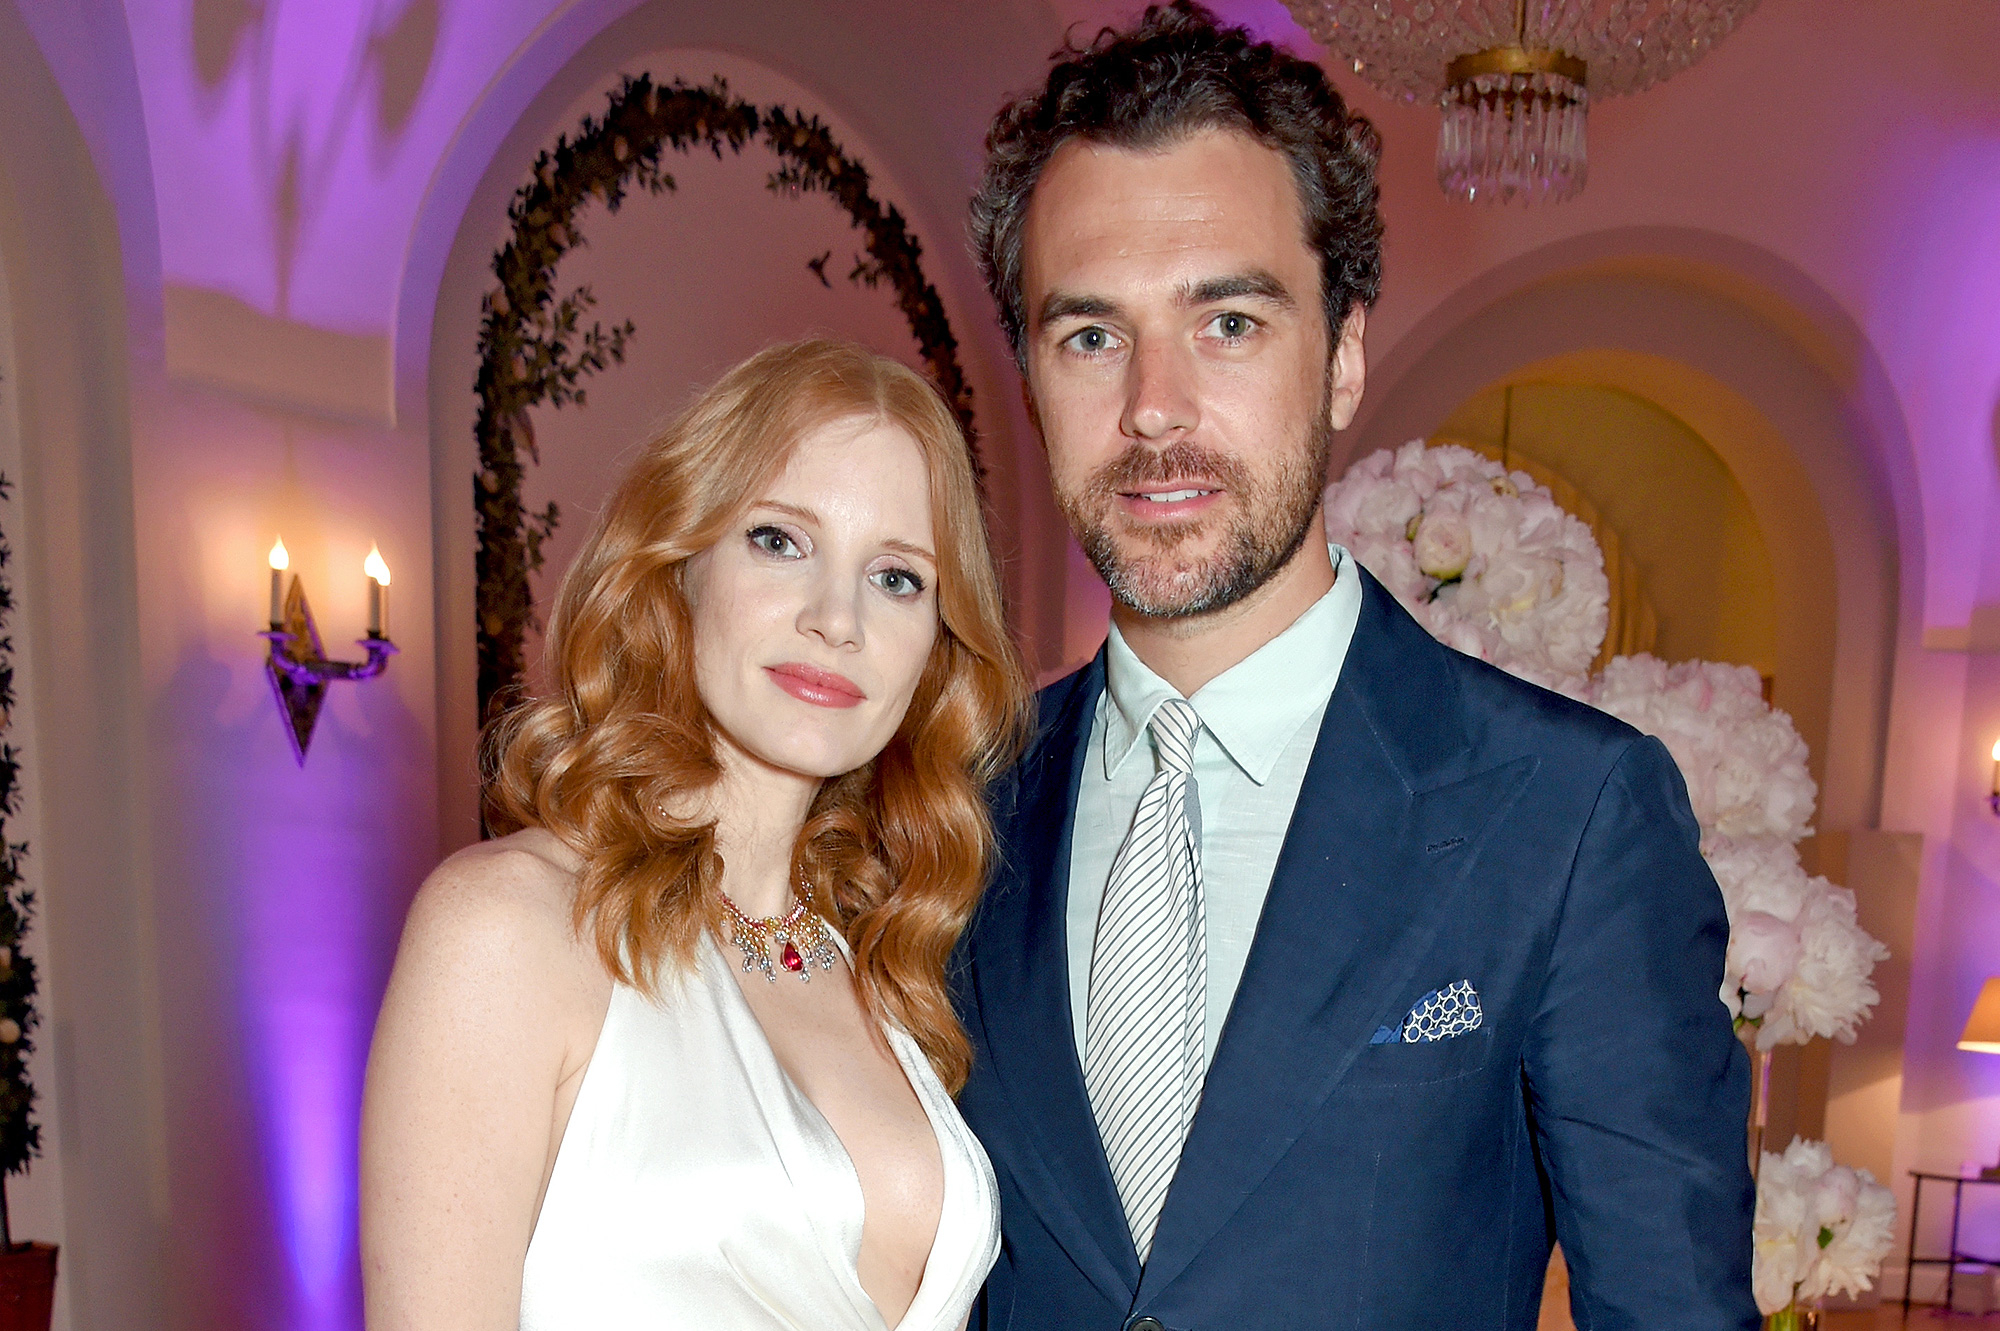 Jessica Chastain and Gian Luca Passi